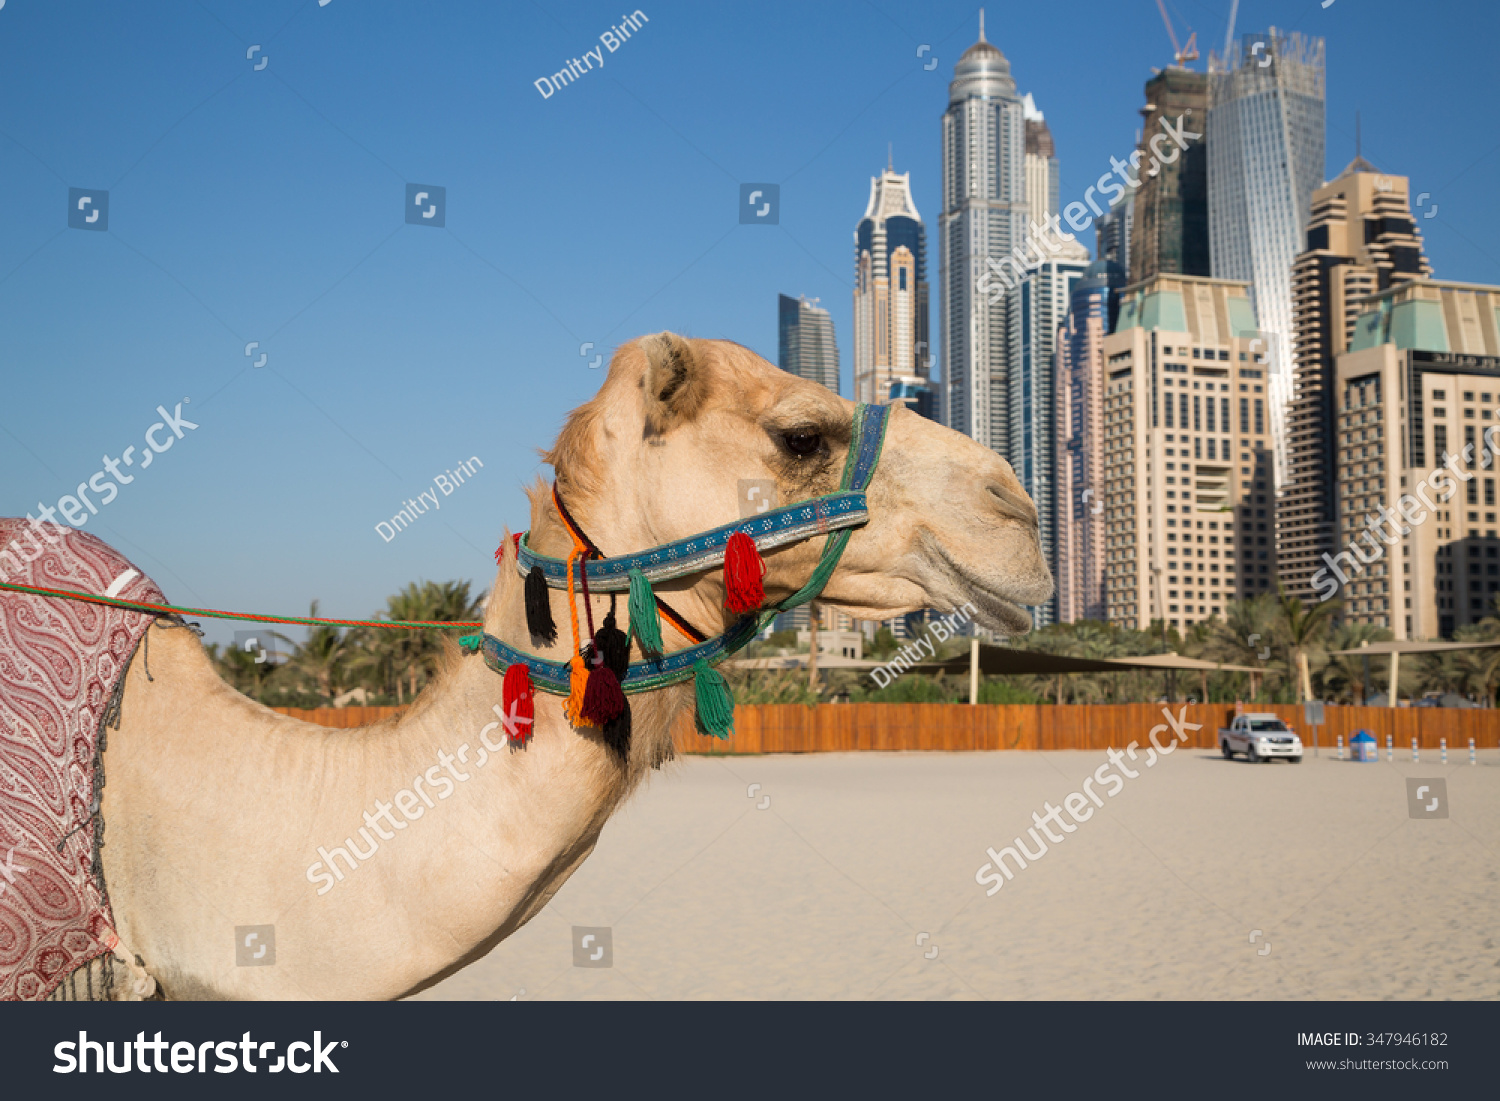 Camel dubai skyscrapers background camel urban stock photo royalty camel dubai skyscrapers background camel urban stock photo royalty free 347946182 shutterstock altavistaventures Choice Image